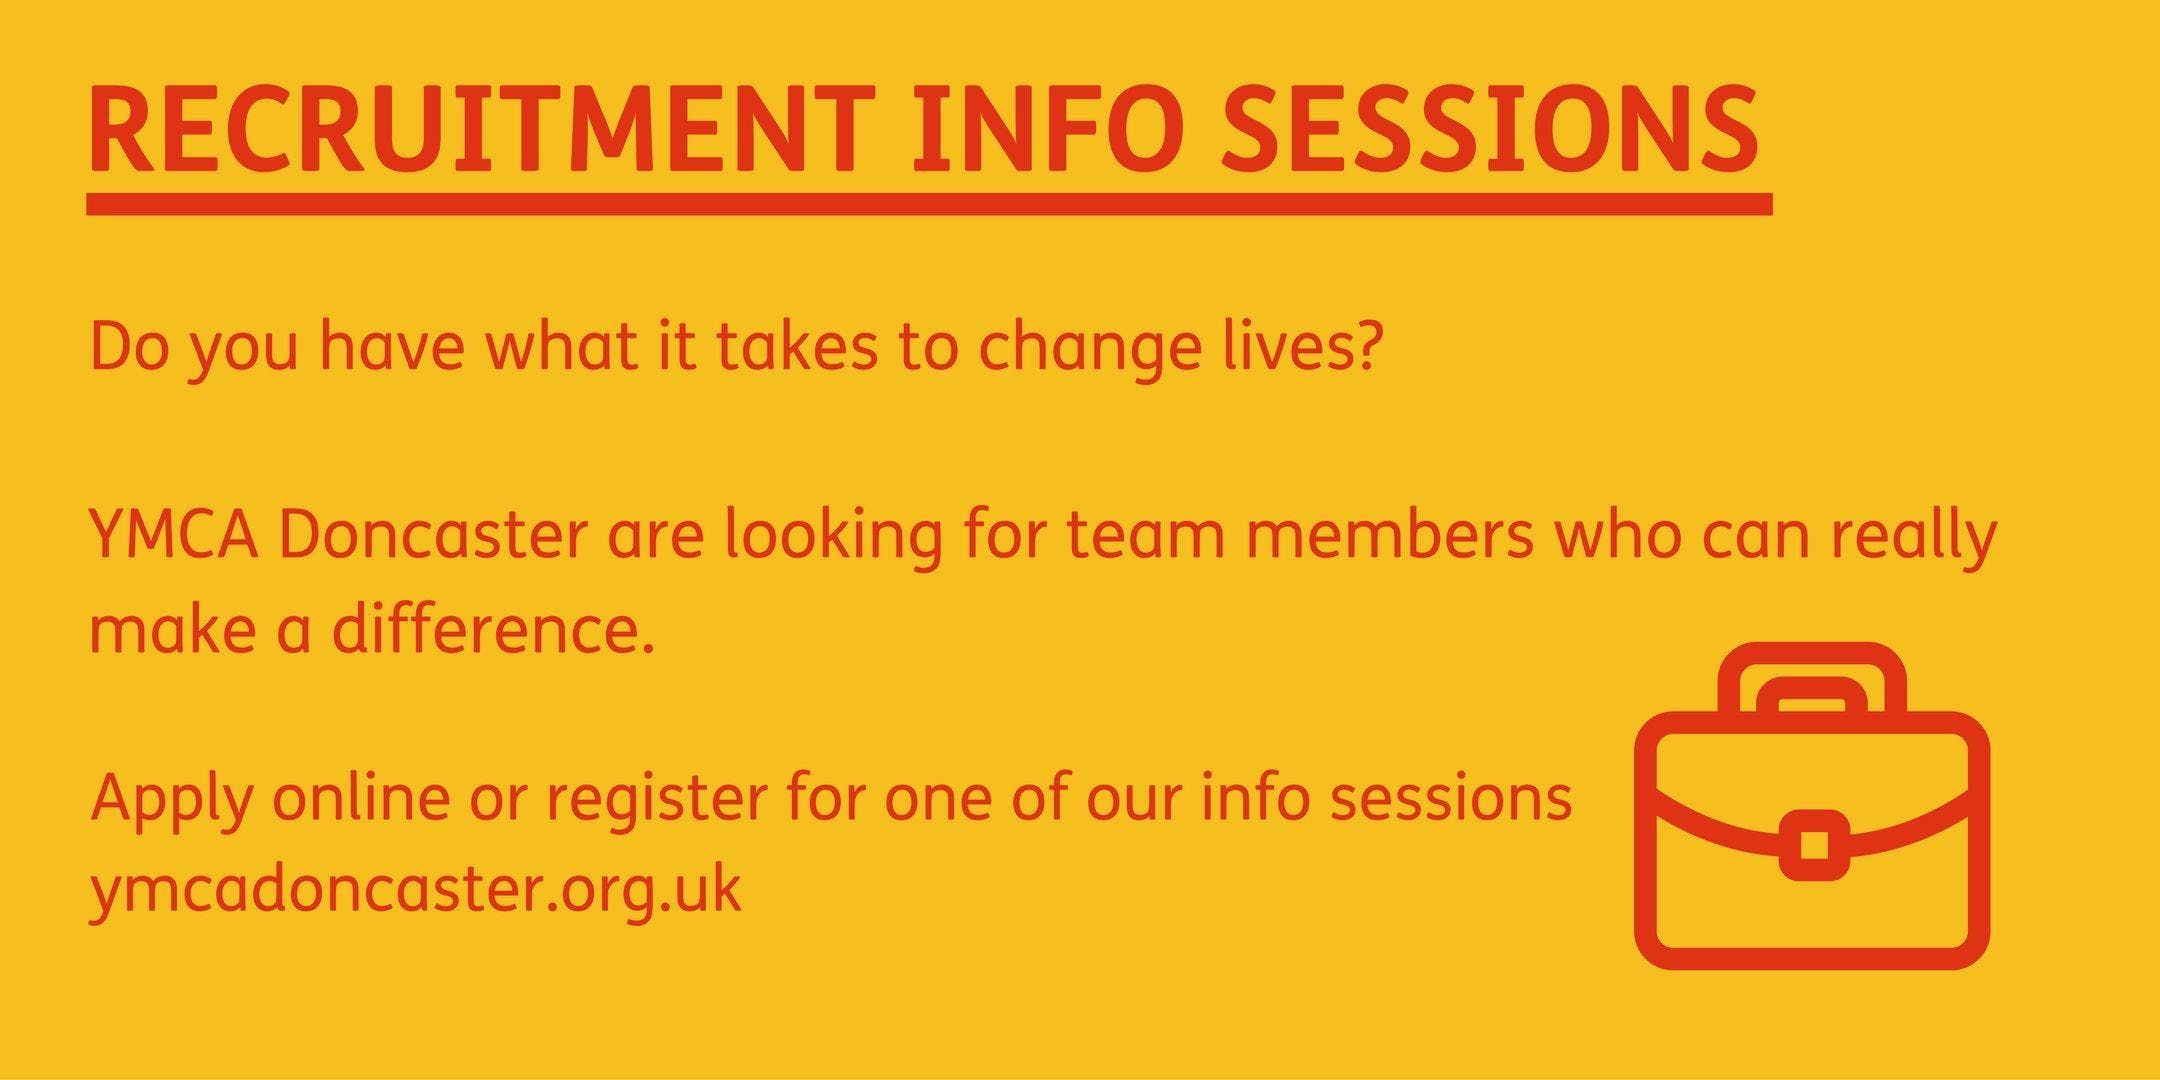 Recruitment Info Session - 12noon on Tuesday